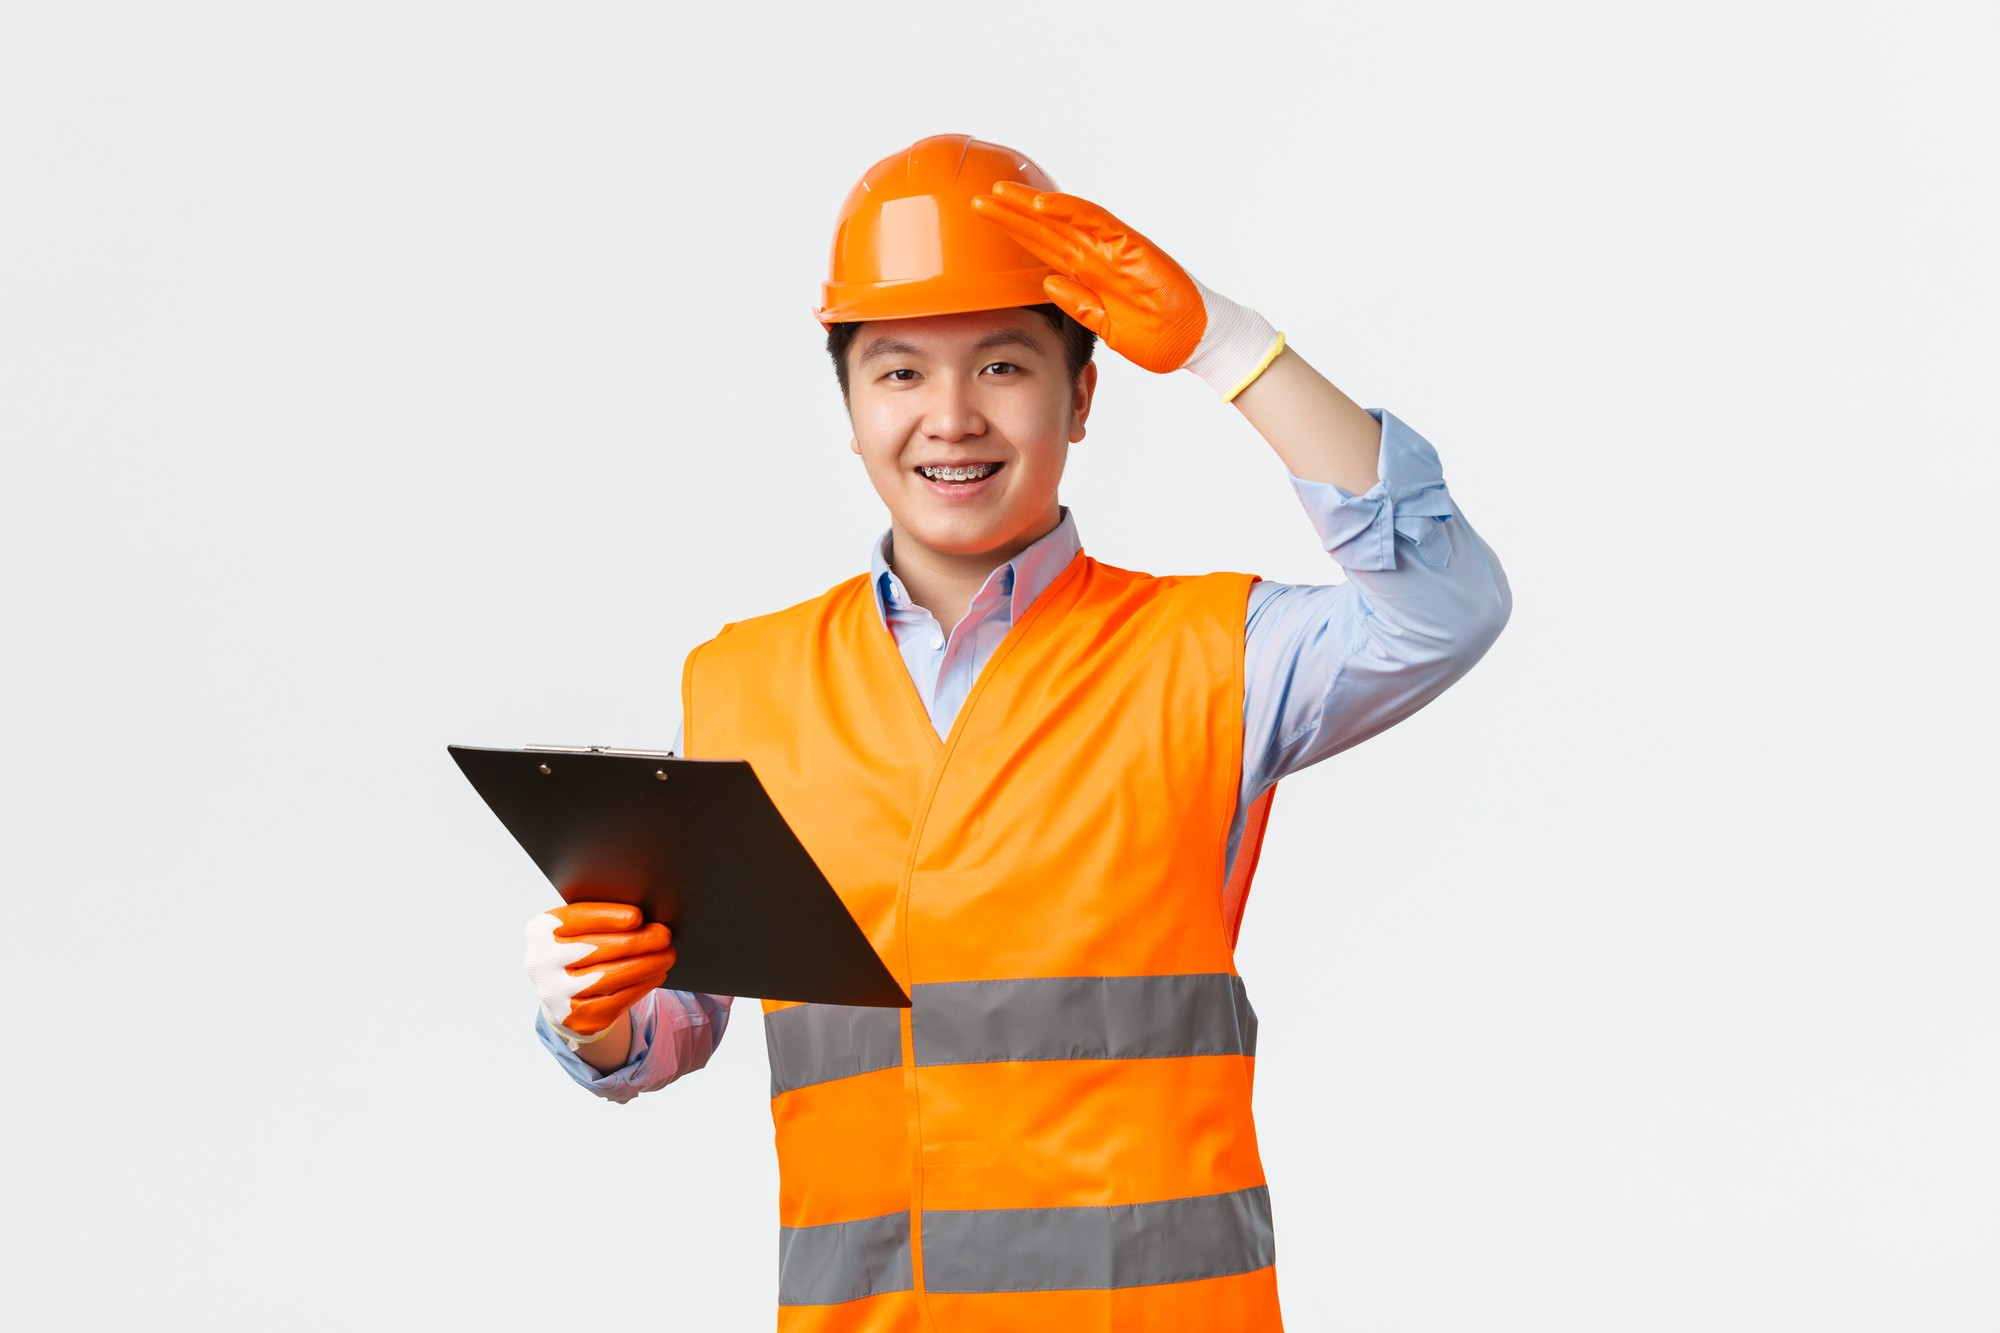 young engineer smiling and saluting while holding blueprint